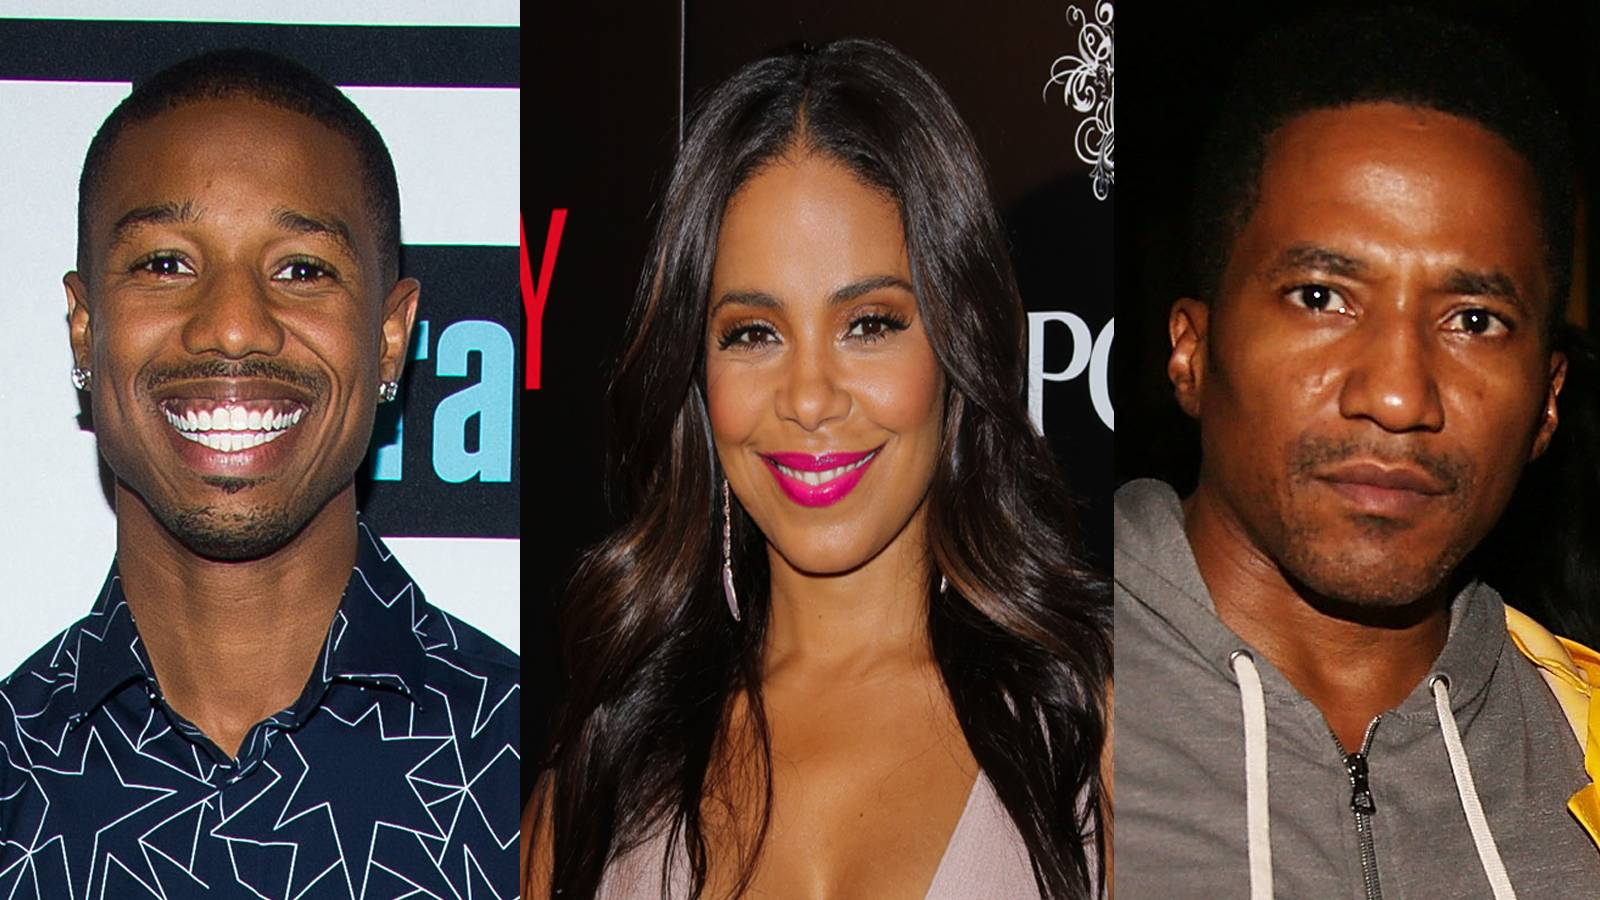 13 Perfect Guys for Sanaa Lathan - We're not sure, but we think if given the chance and right moment these fellas could catch Sanaa's eye.(Photos from left: Charles Sykes/Bravo/NBCU Photo Bank via Getty Images, Paul Archuleta/FilmMagic,Shareif Ziyadat/FilmMagic)